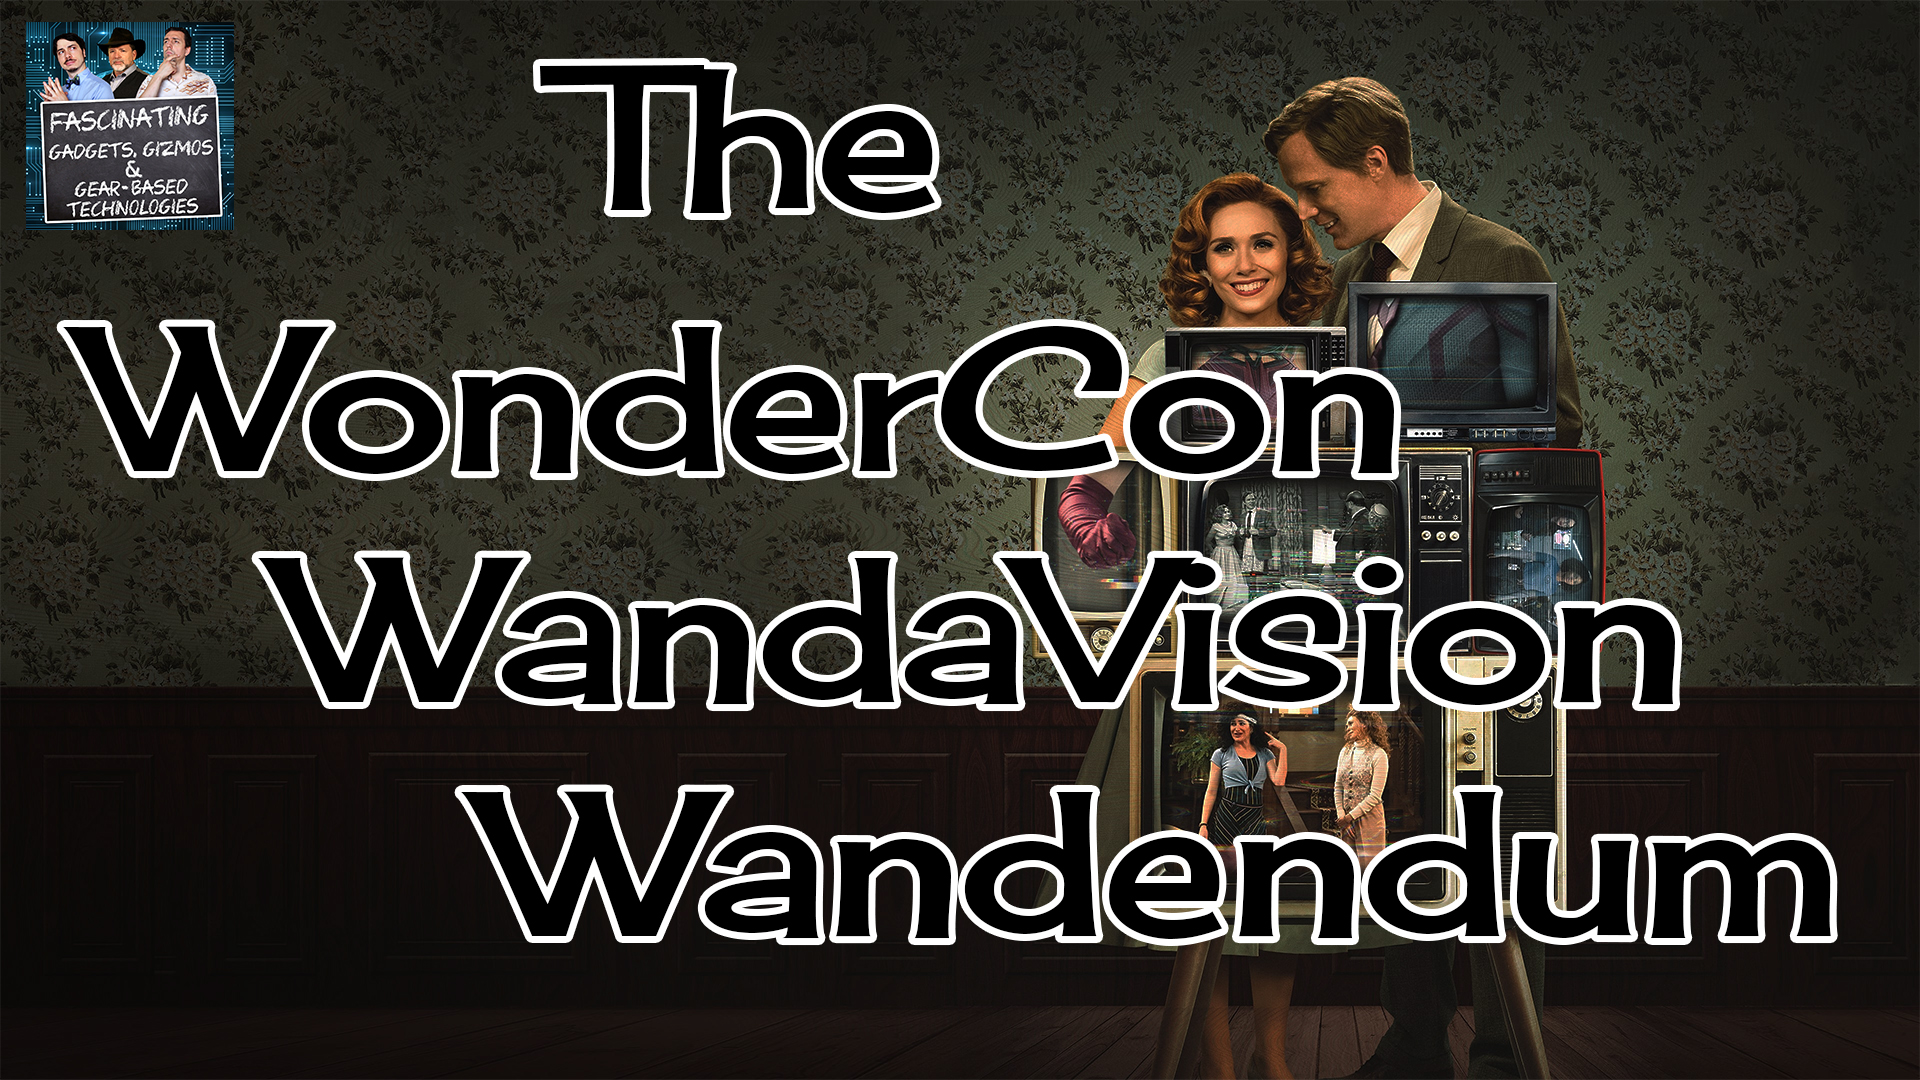 You are currently viewing Ep. 81 The WonderCon WandaVision Wandendum